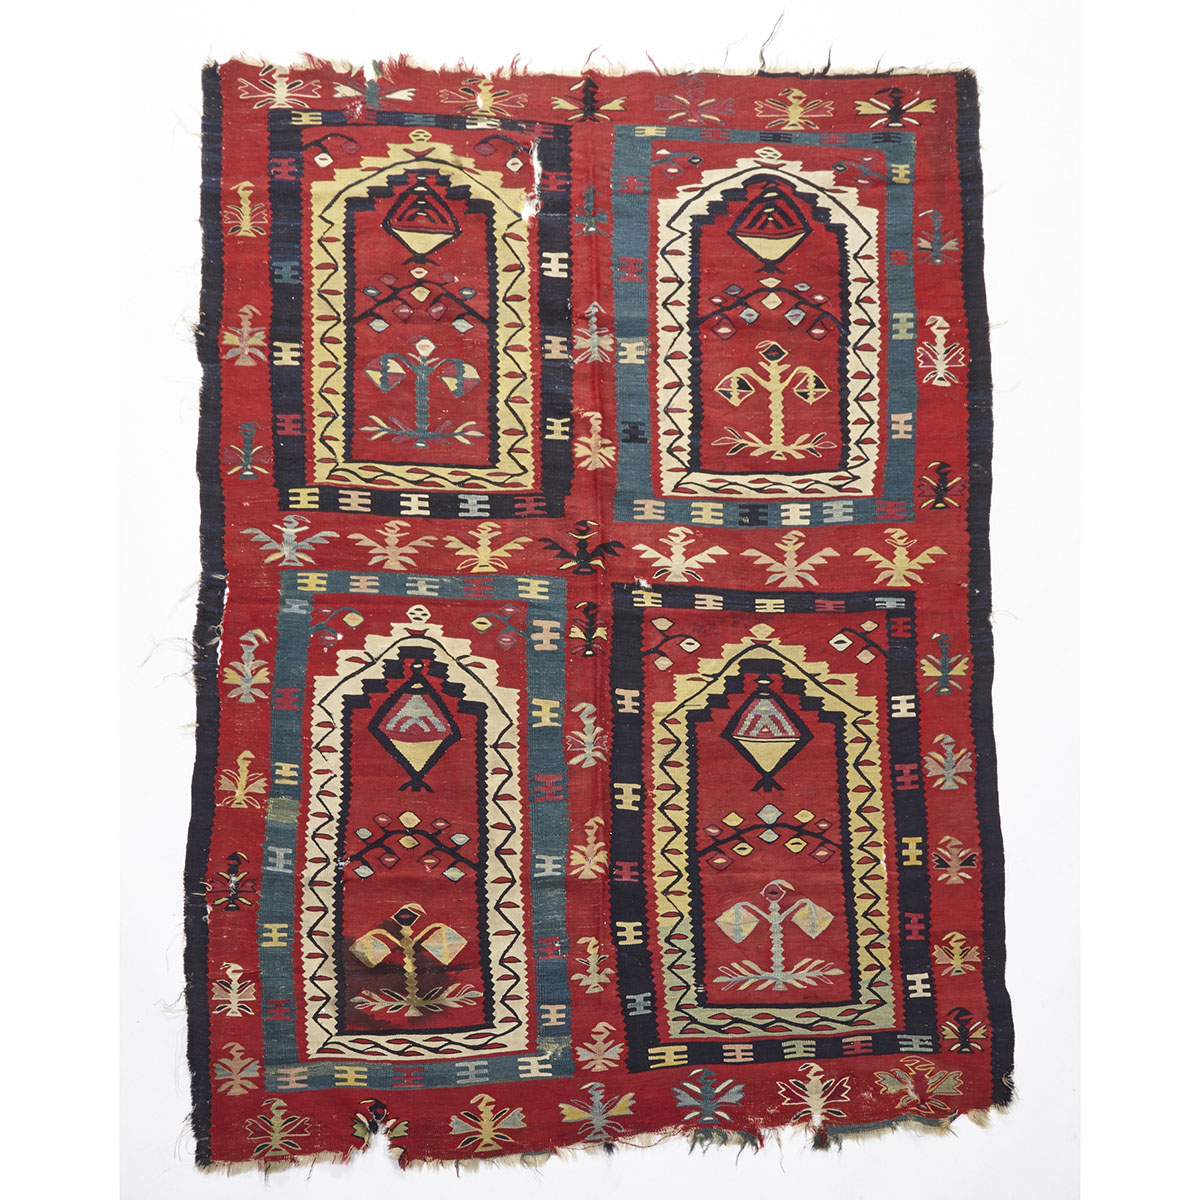 Fine Anatolian Kelim, early 20th century